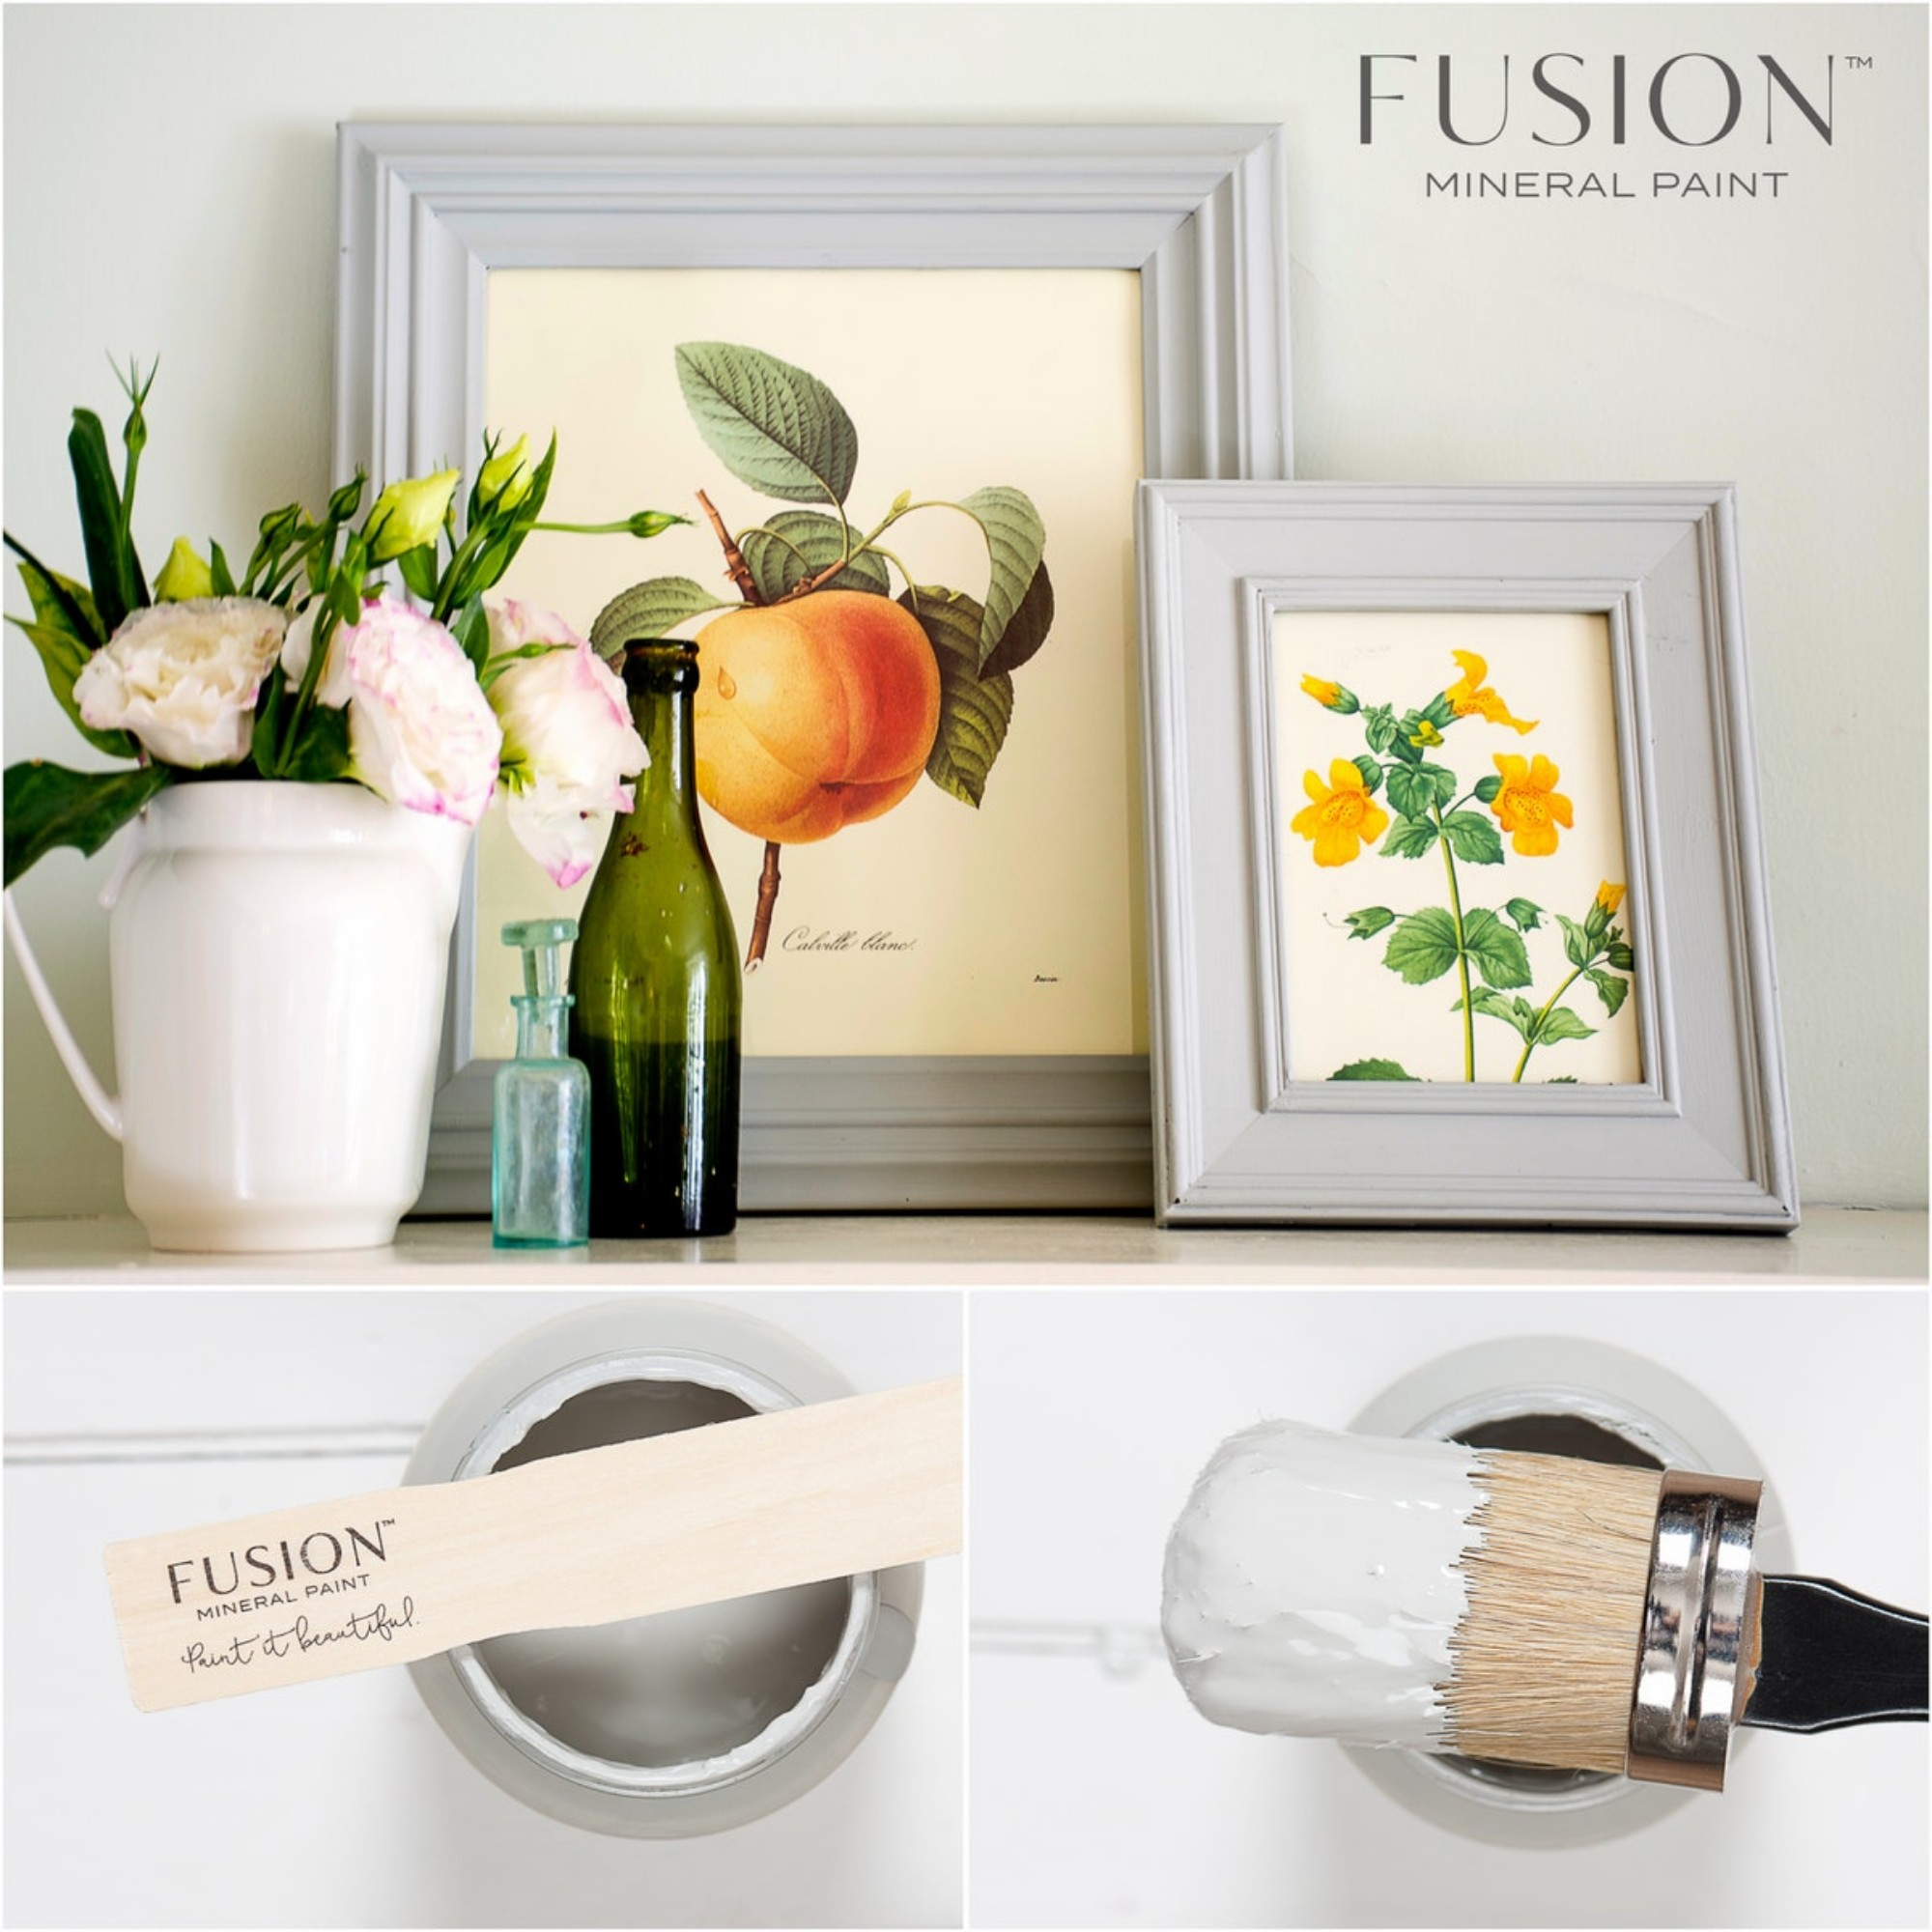 Top 10 Fusion™ Facts - Learn why Fusion™ Mineral Paint is ideal for your next furniture painting project. Paint it beautiful today.